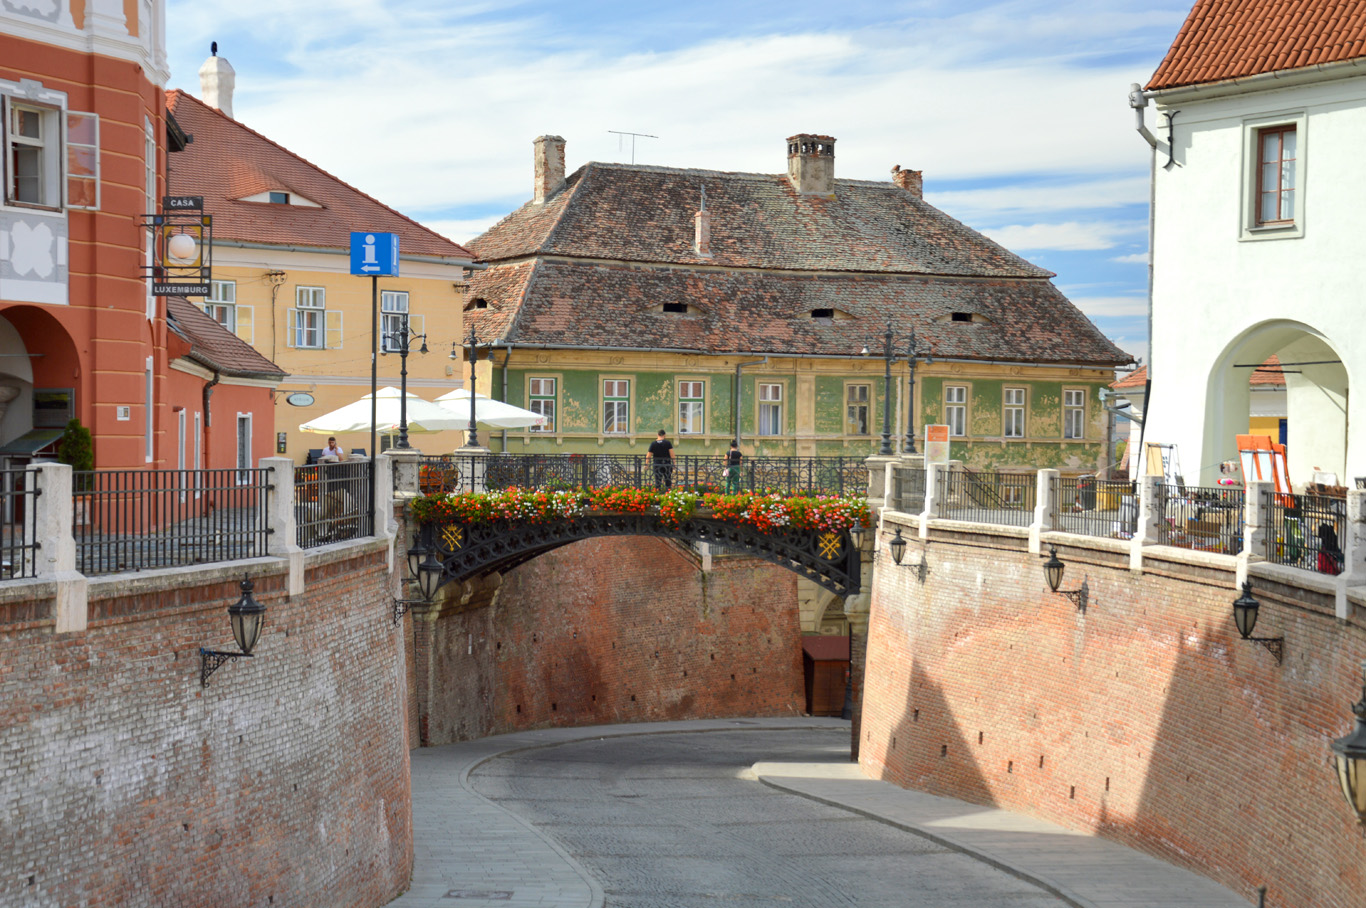 Old town and The Bridge of lies